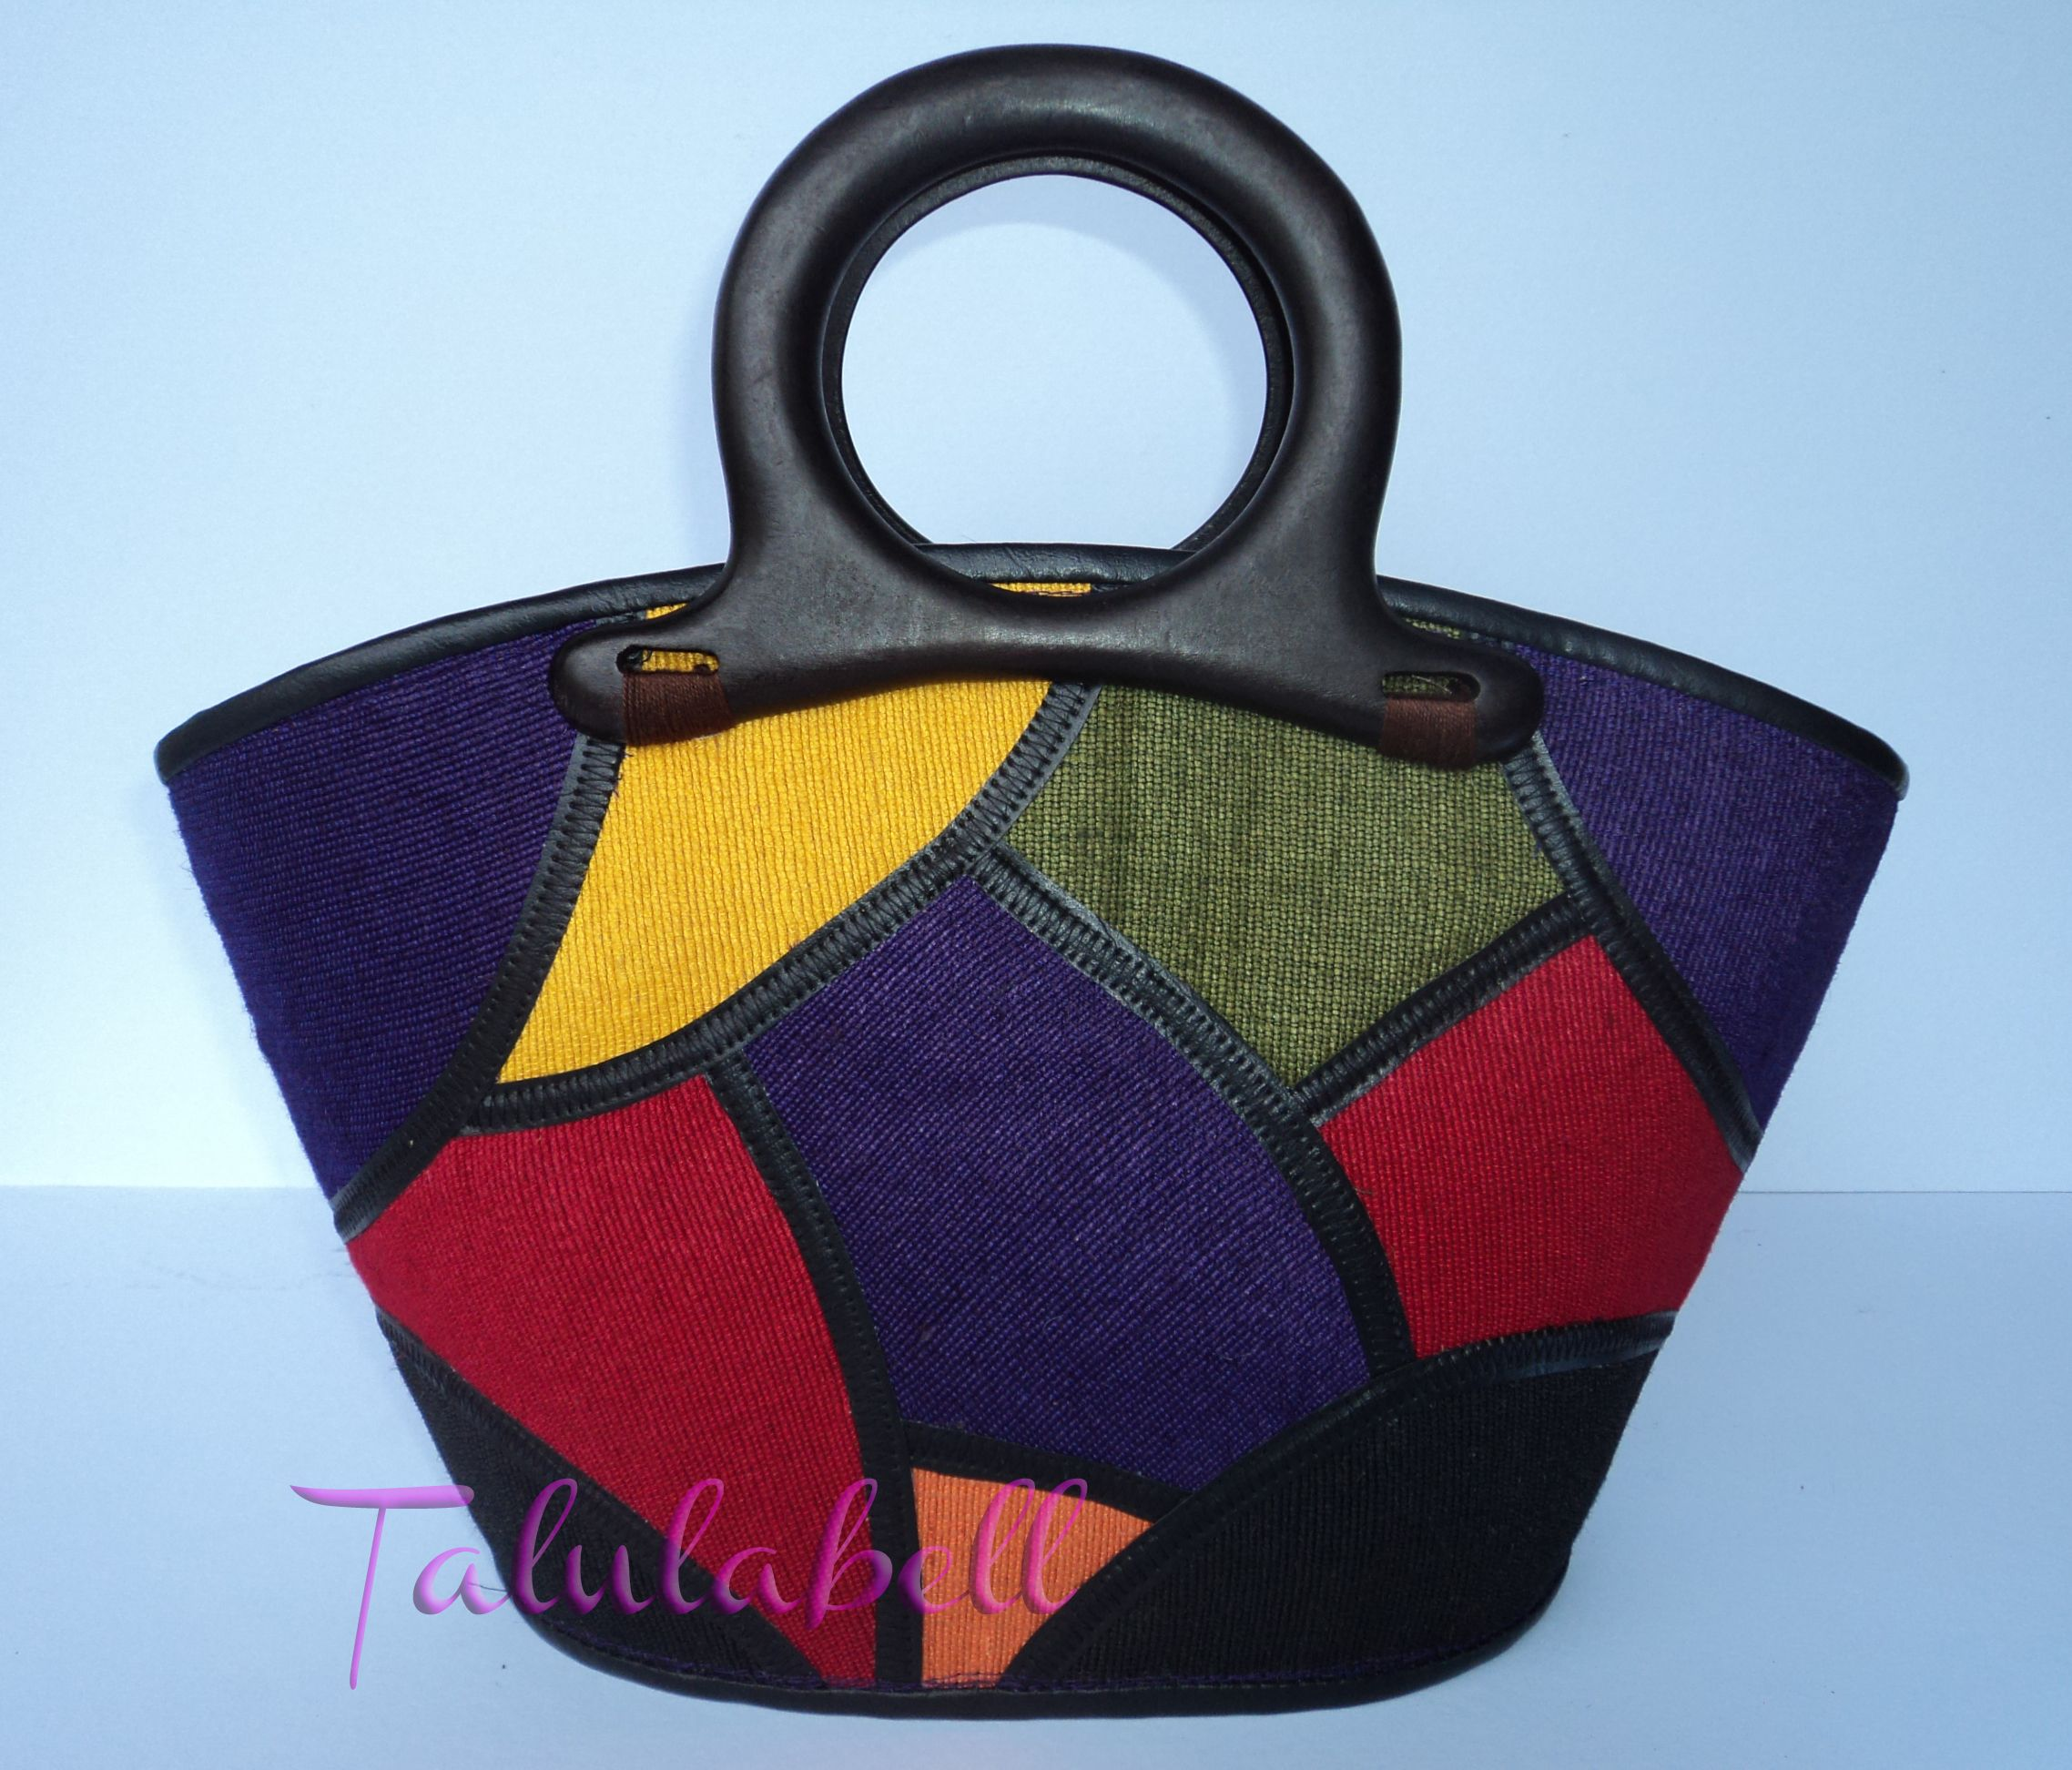 Kultura Abaca Bag Design: Native Abaca Bags